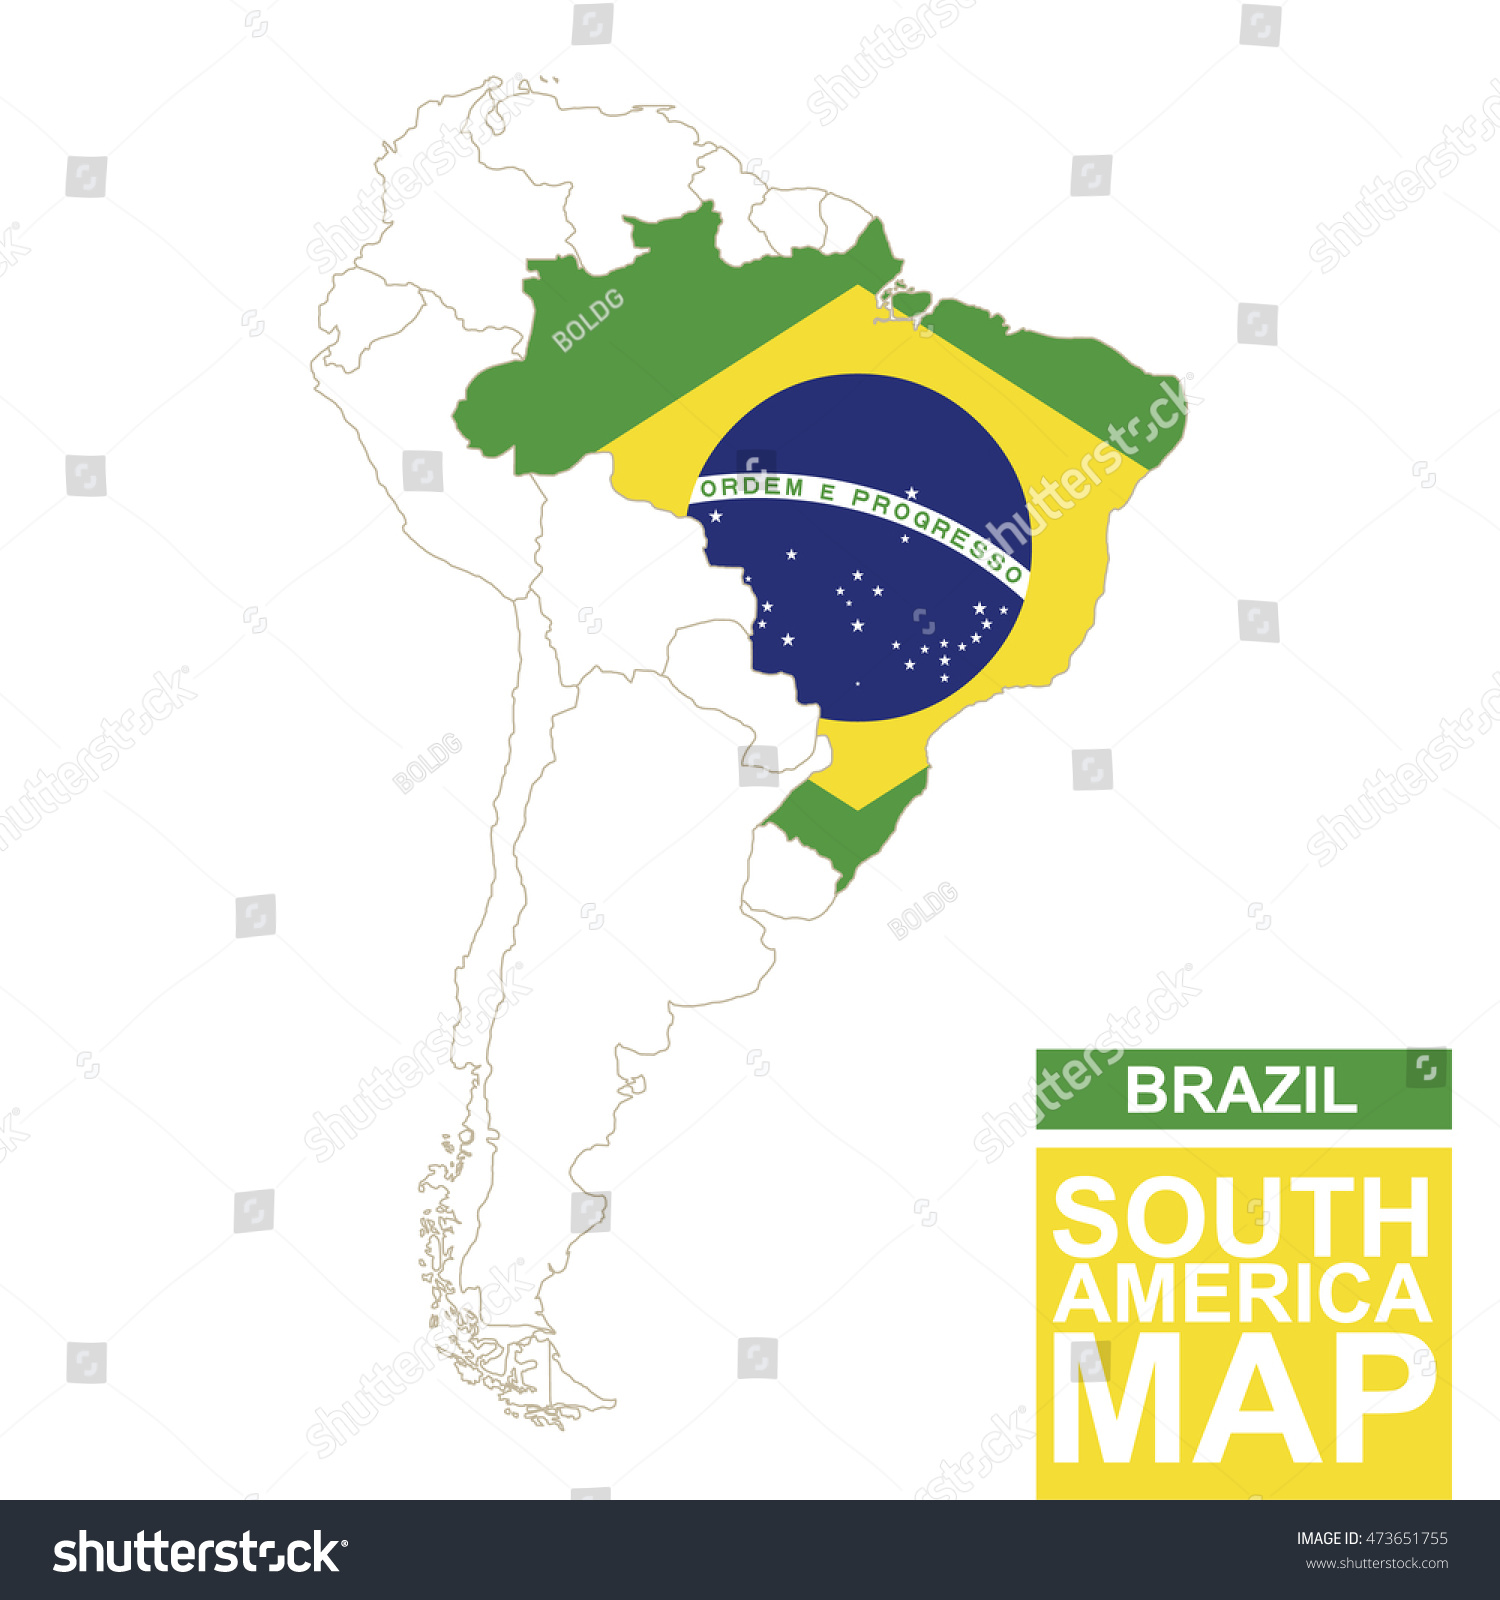 South America Contoured Map Highlighted Brazil Stock Illustration - Brazil south america map